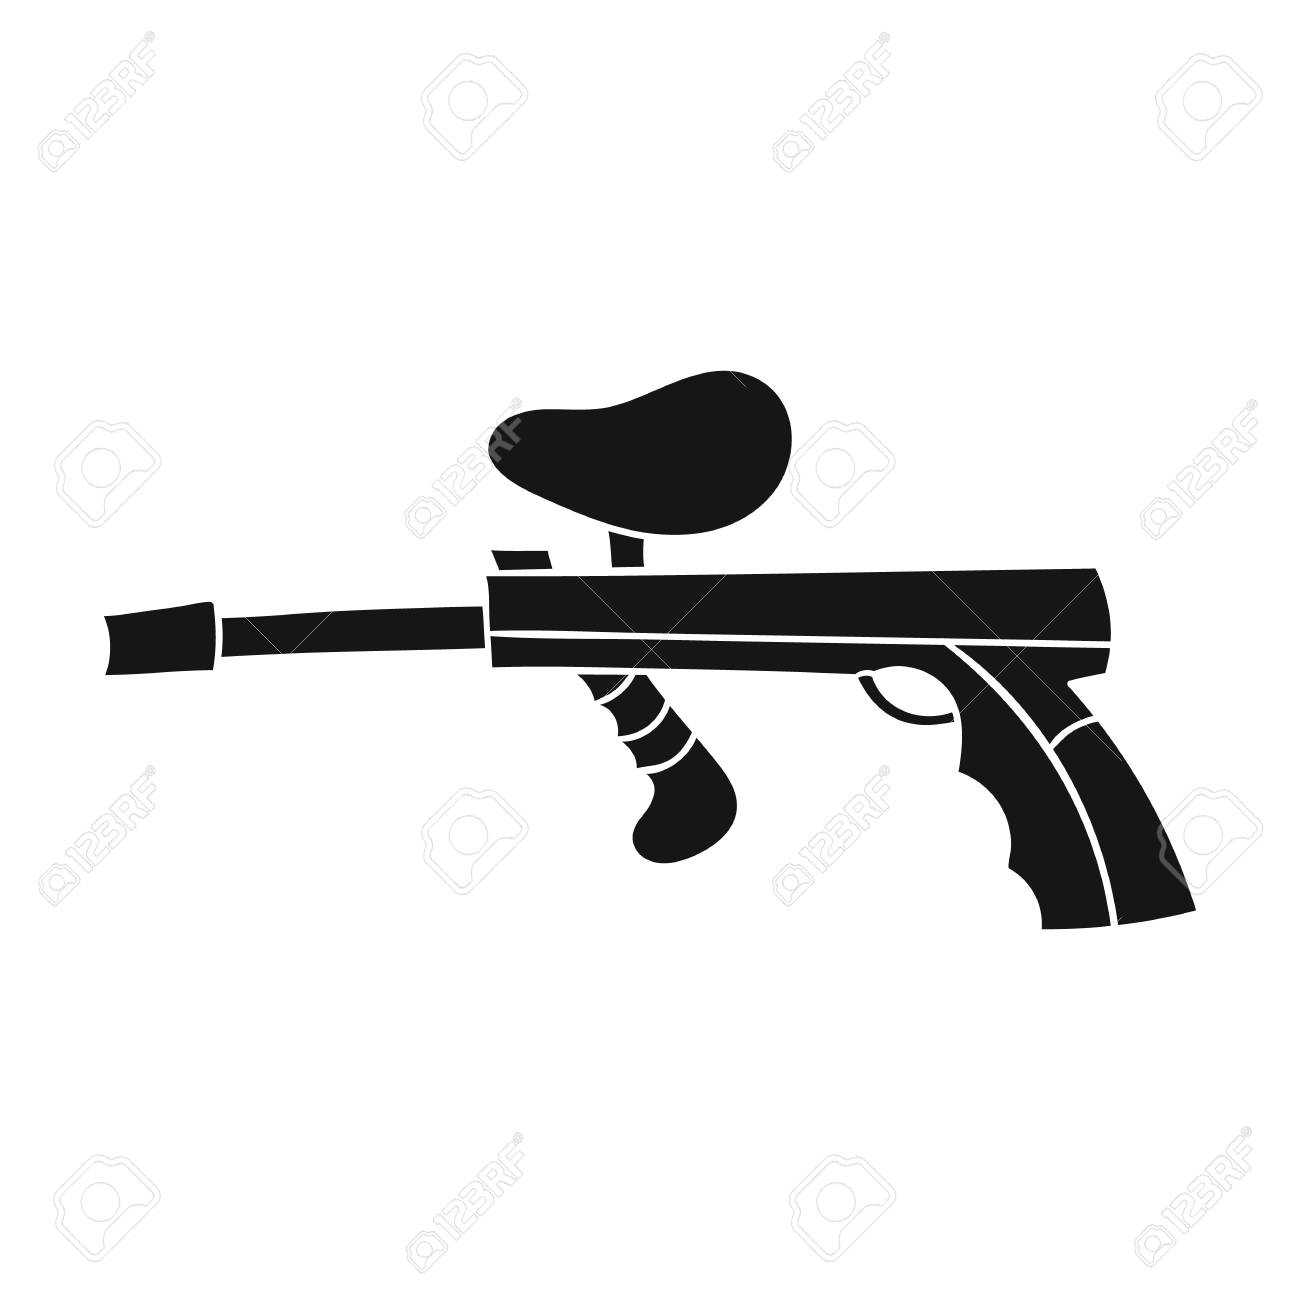 paintball gun icon in black style isolated on white background